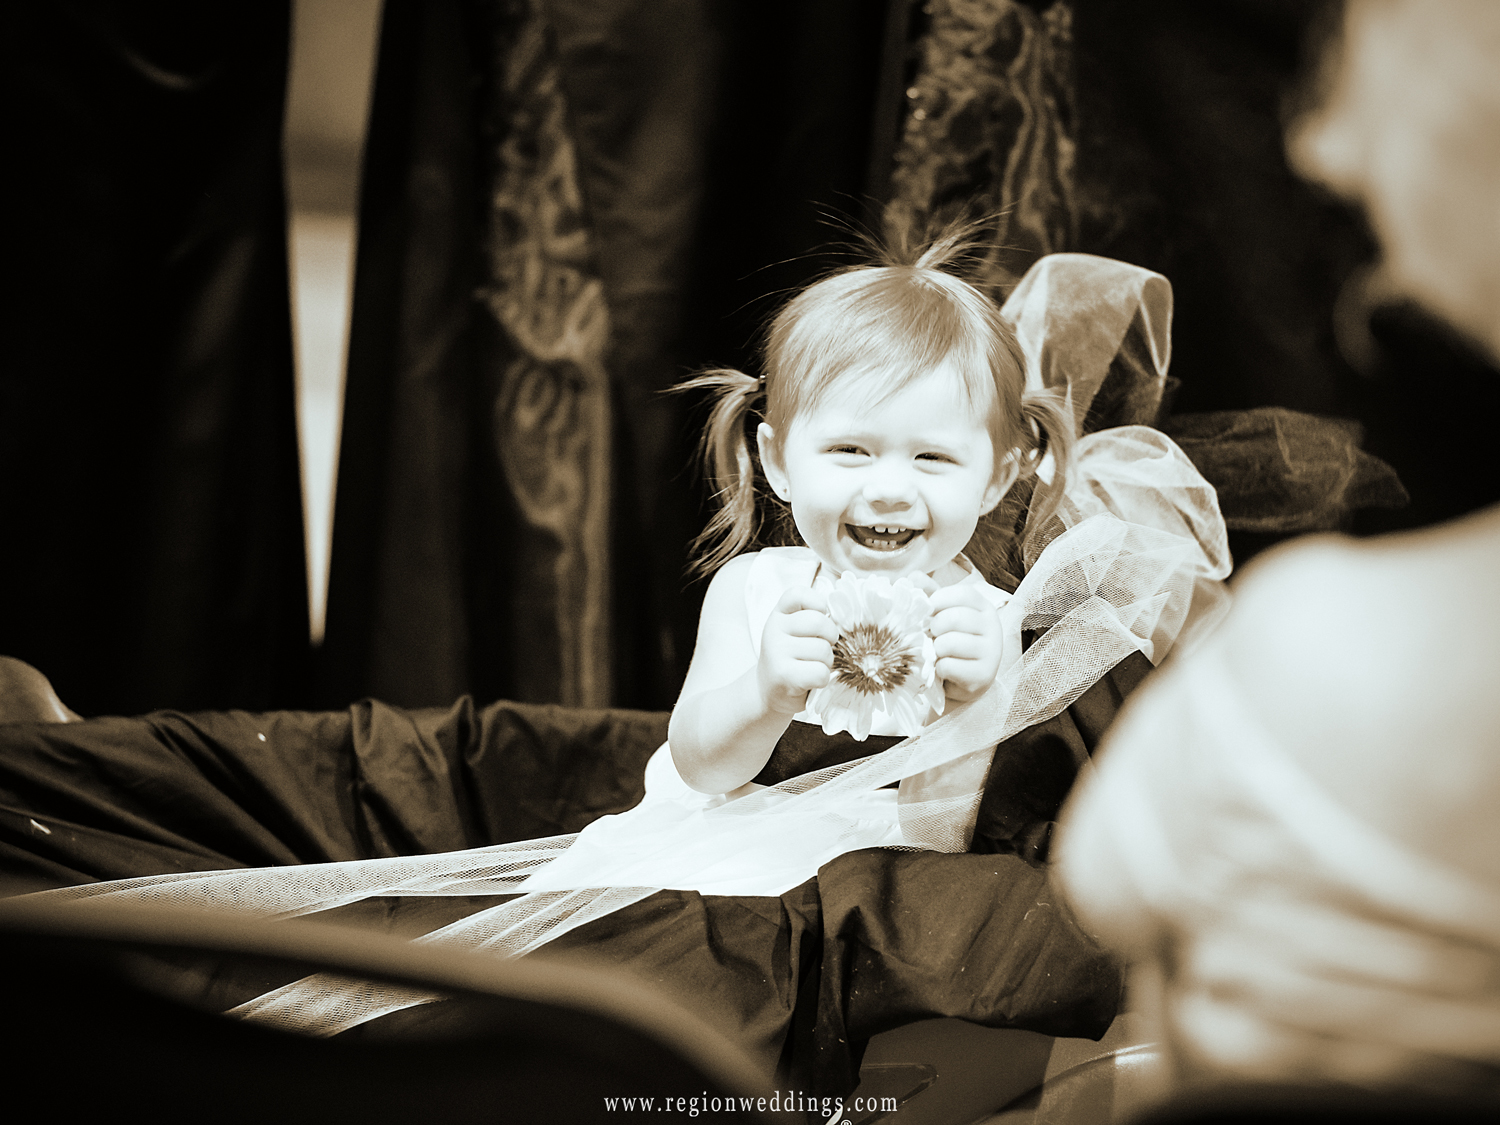 The flower girl enjoys the attention as she rides in via a red wagon.